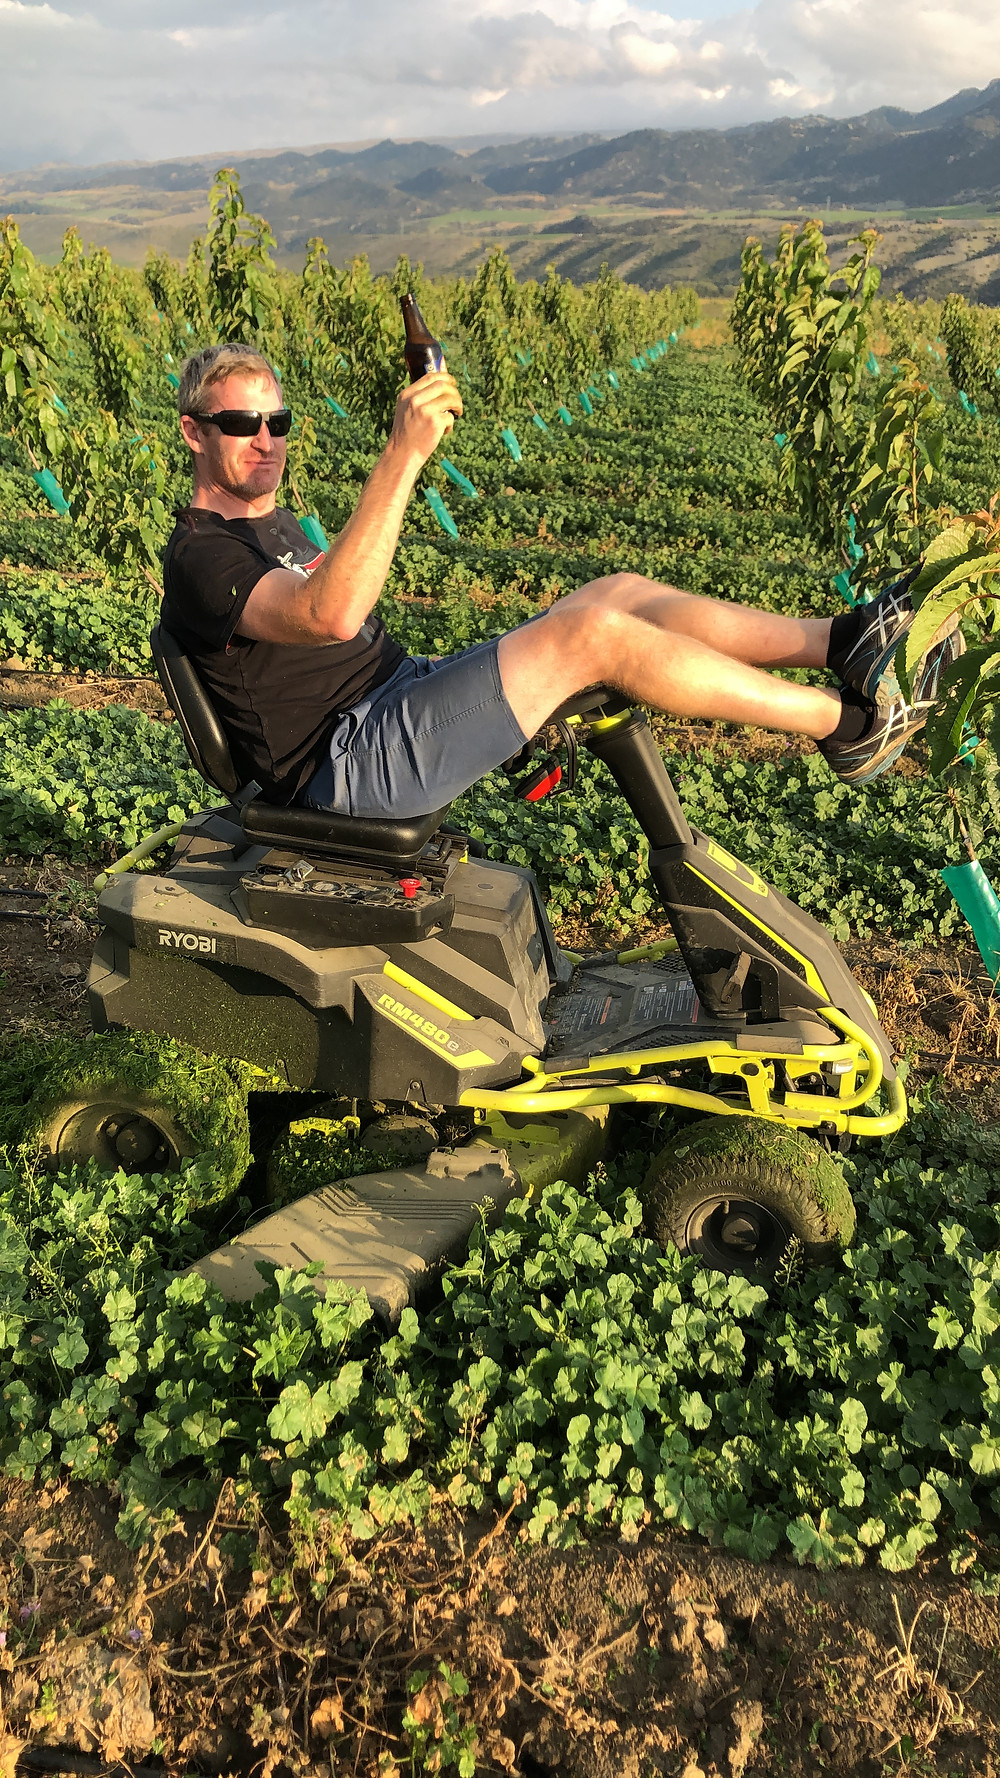 Euan enjoying a beer while mowing the rows